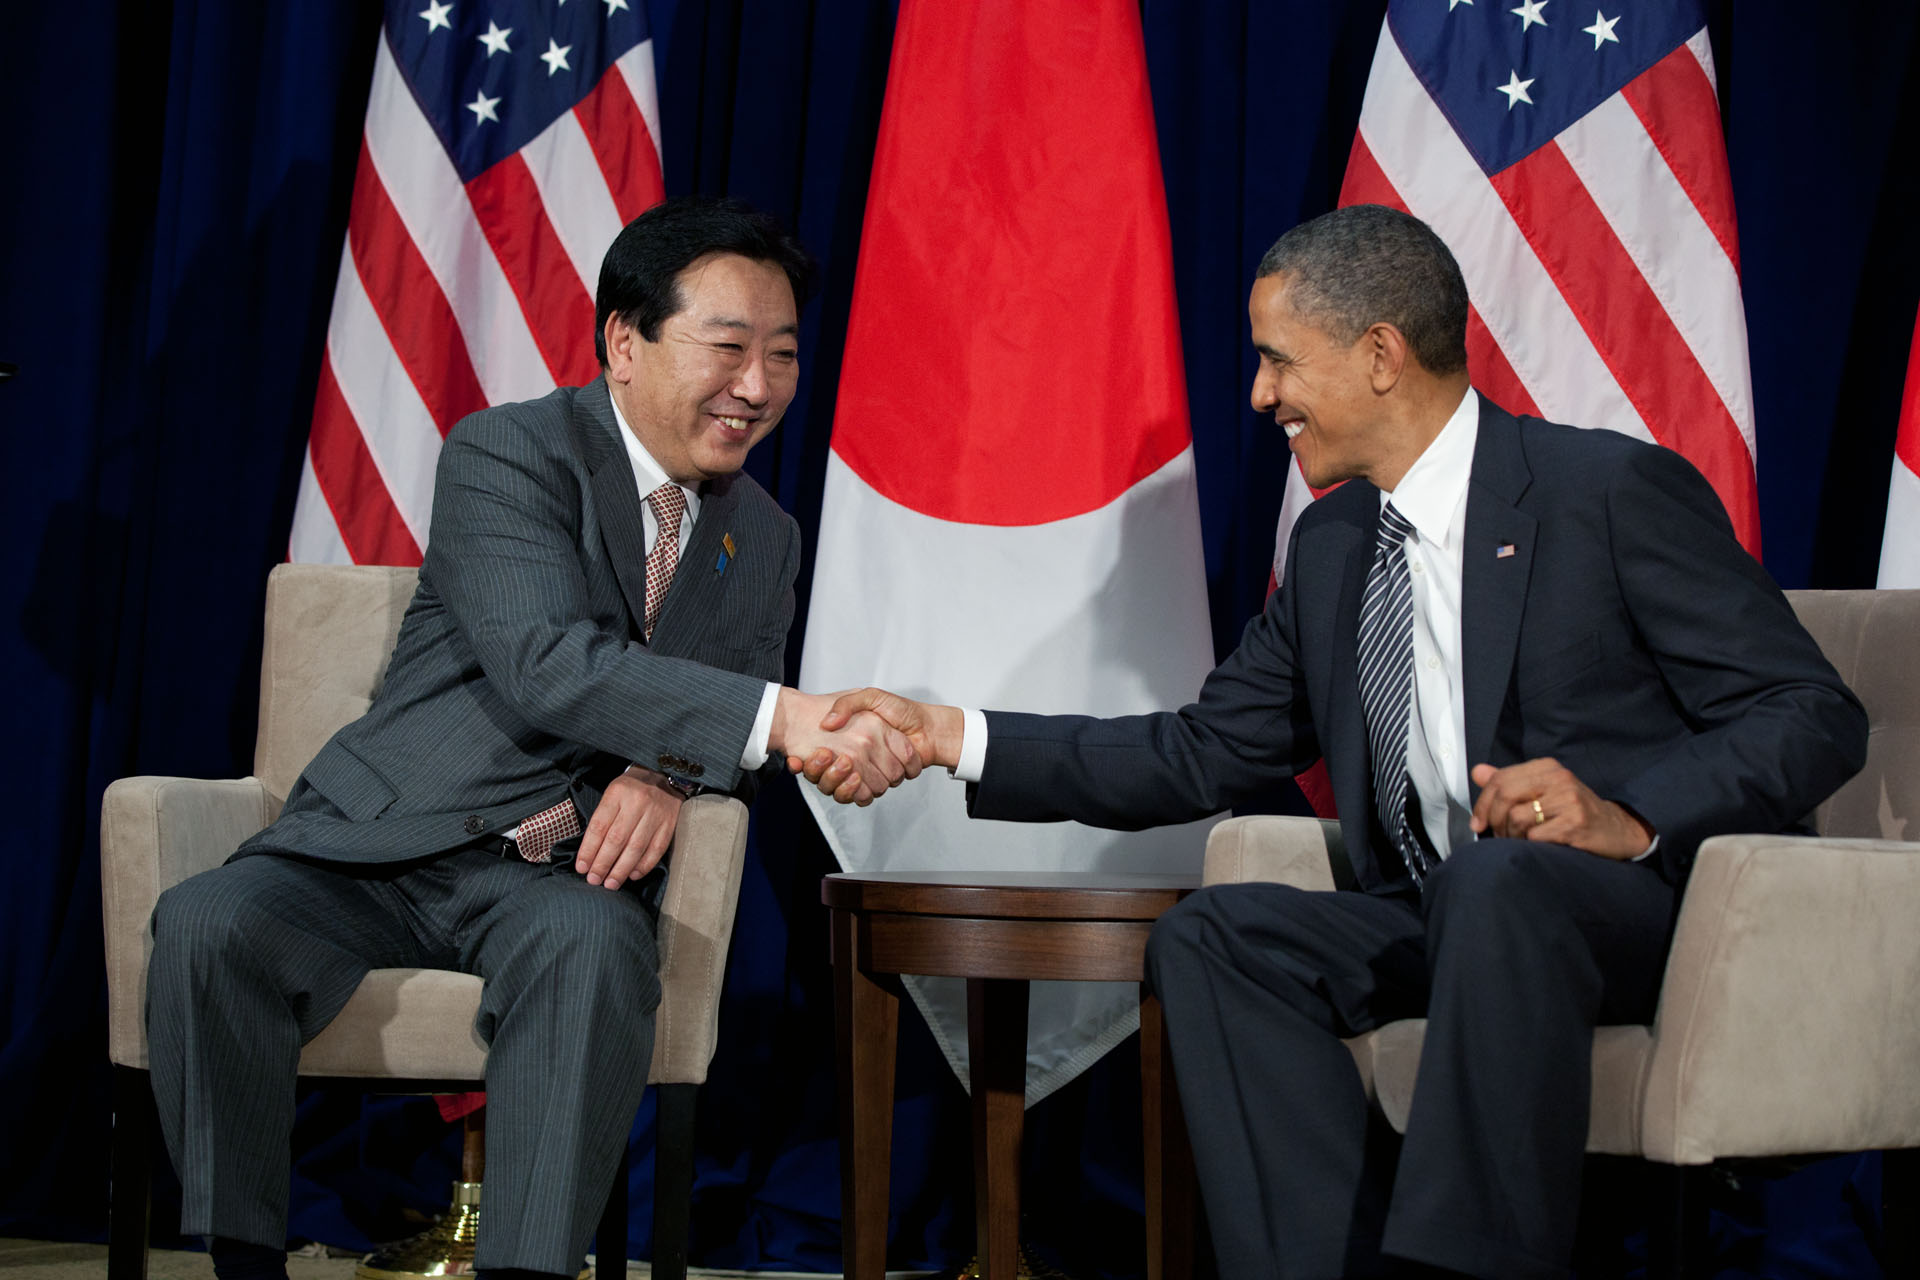 President Barack Obama meets with Prime Minister Yoshihiko Noda of Japan